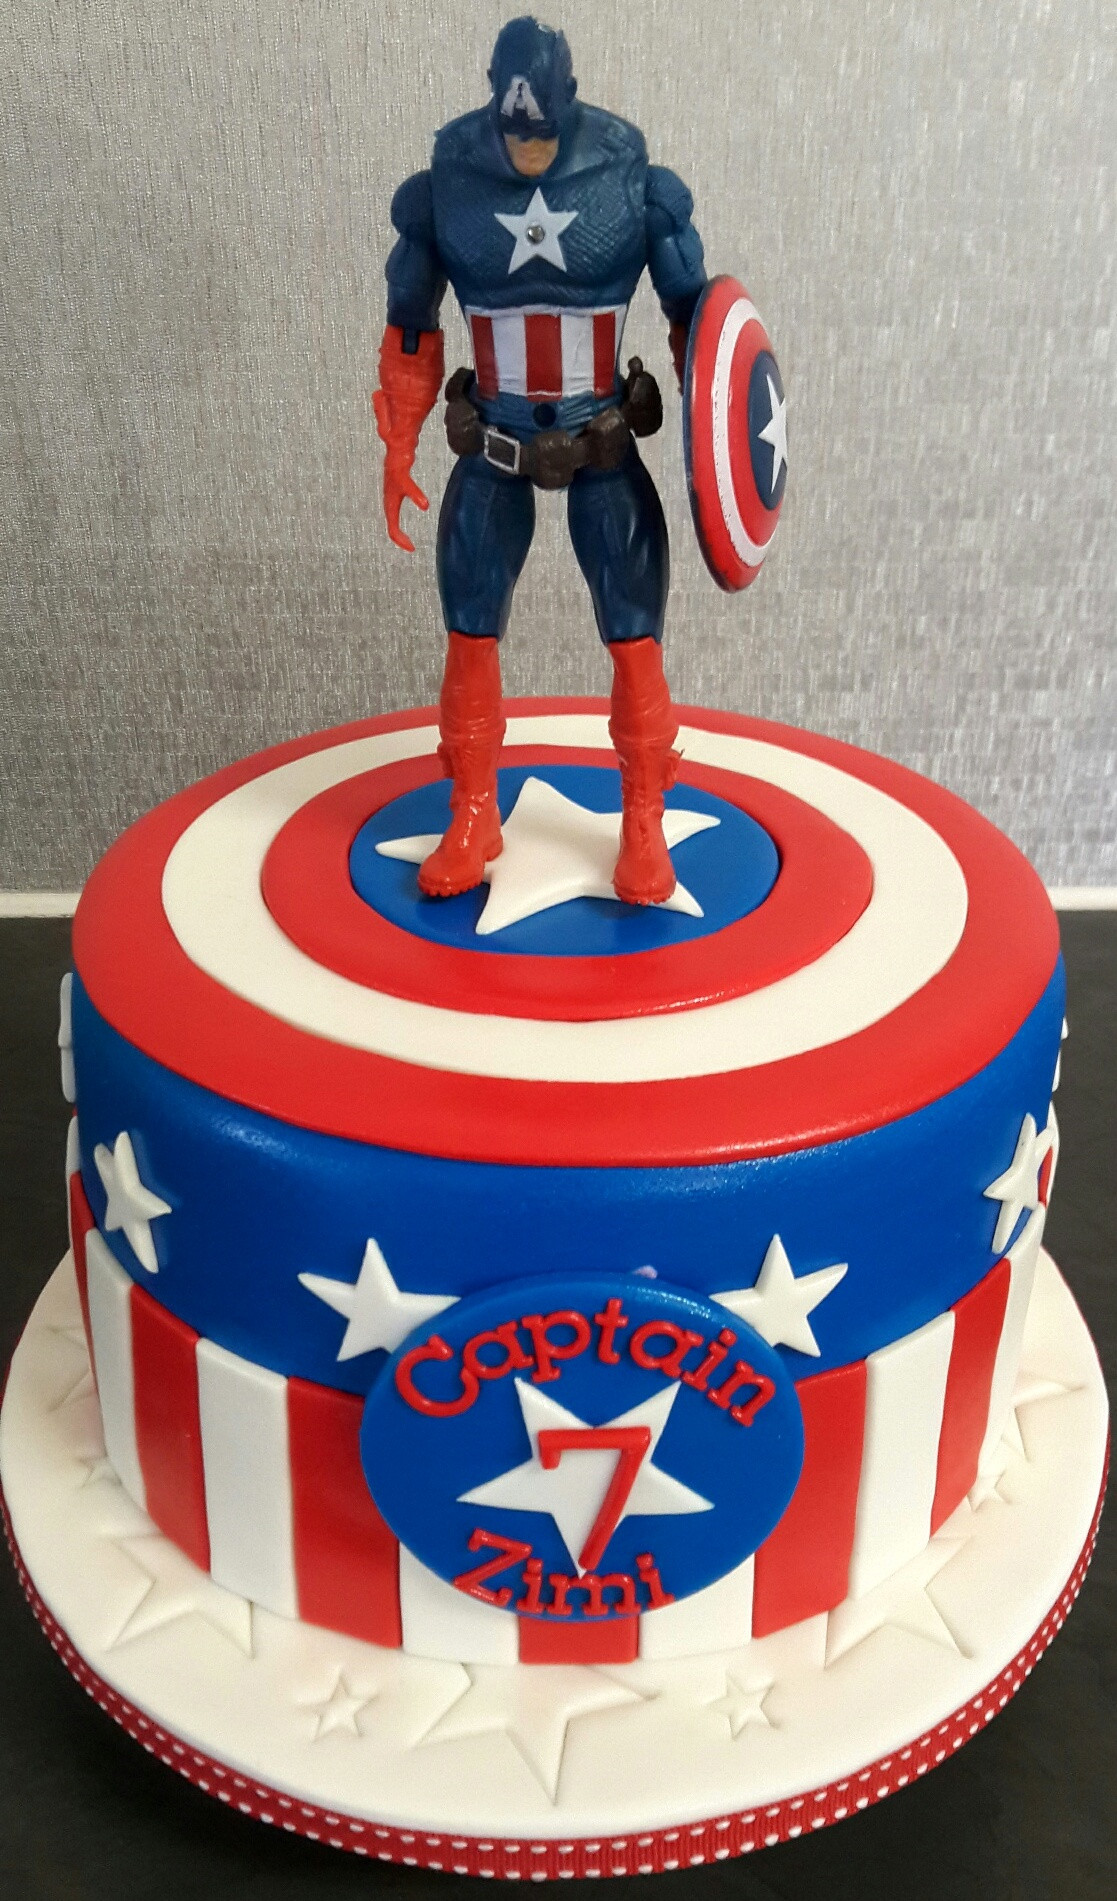 Best ideas about Captain America Birthday Cake . Save or Pin Birthday Cakes Now.